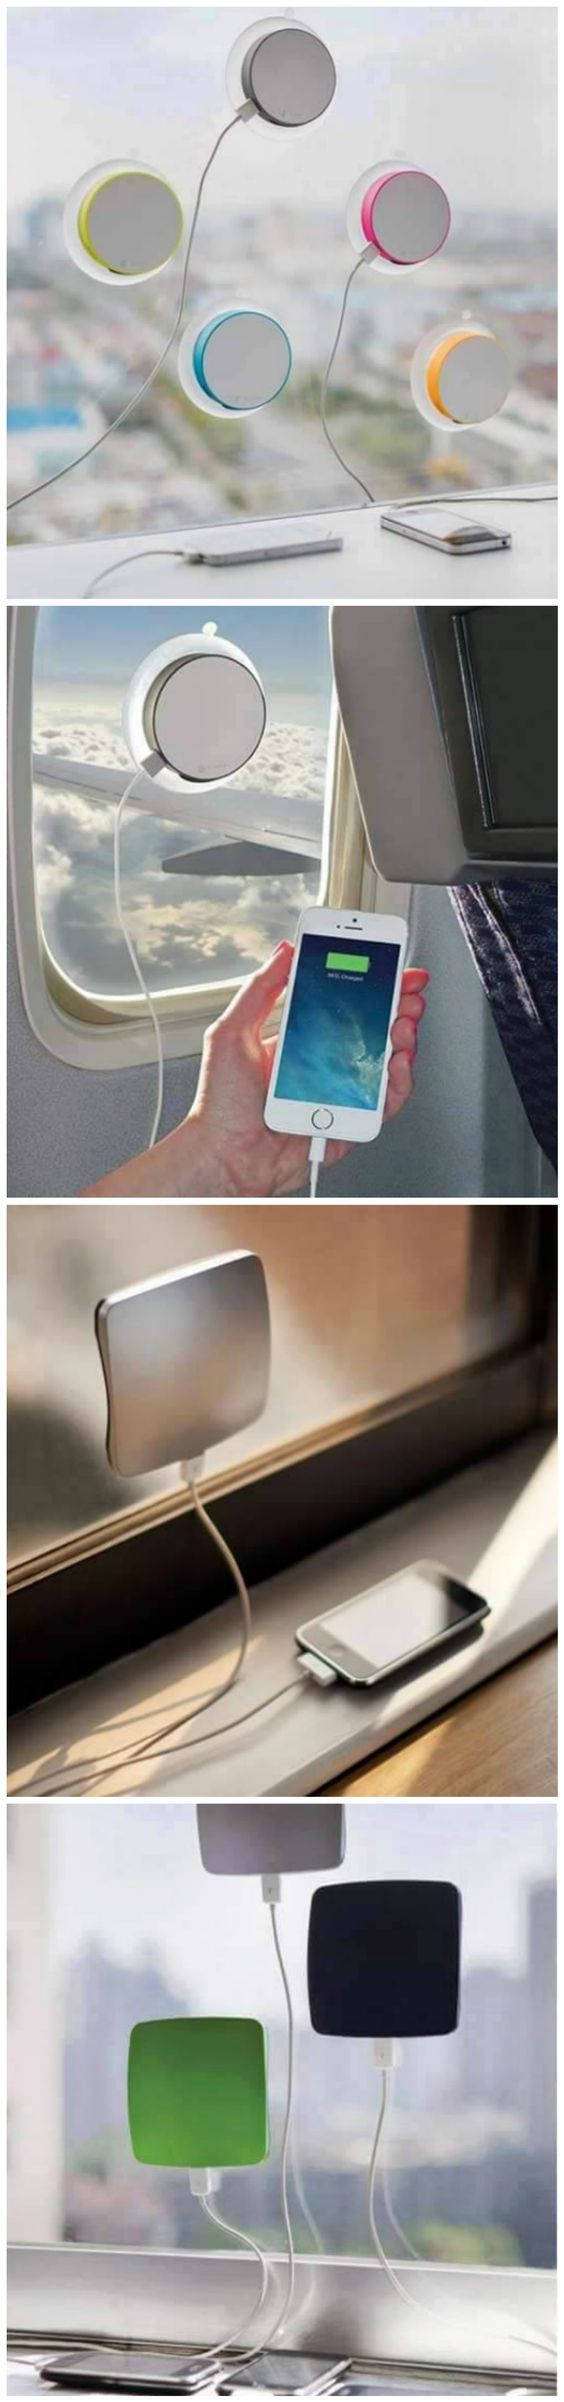 Stay prepared no matter where you're traveling with this window-mounted solar rechargeable power bank.…